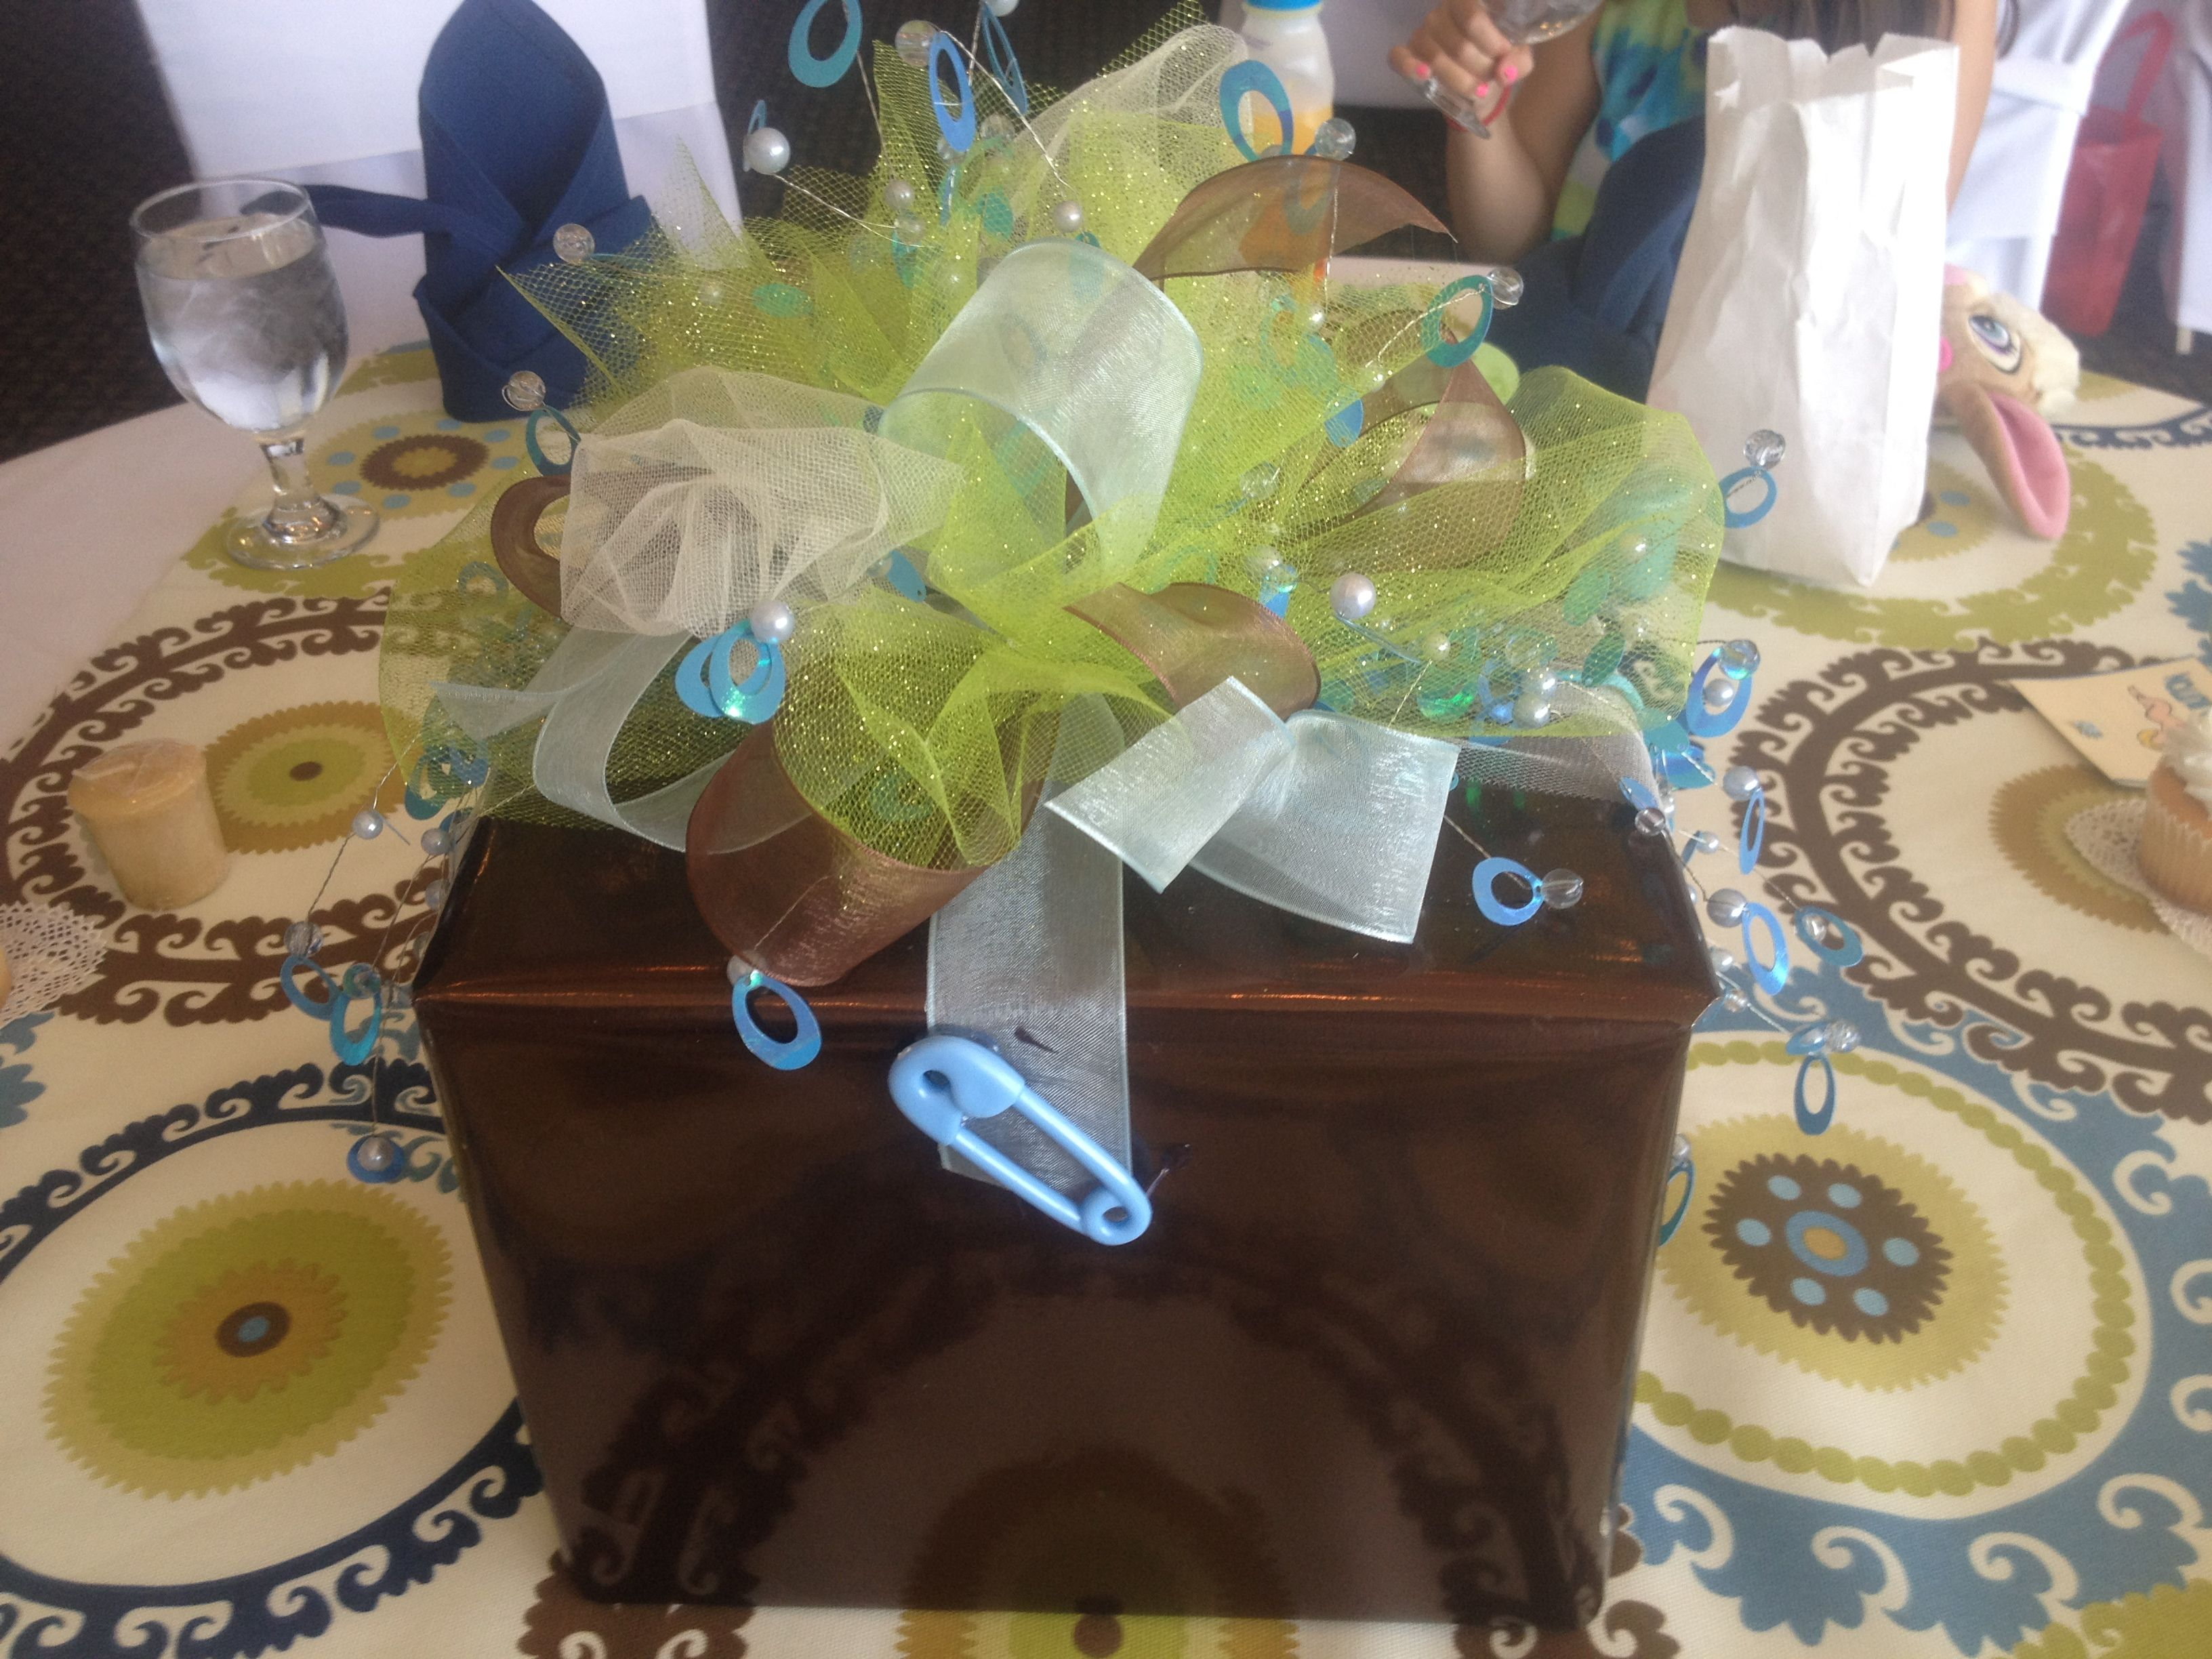 Baby shower centerpieces are boxes of diapers and wipes